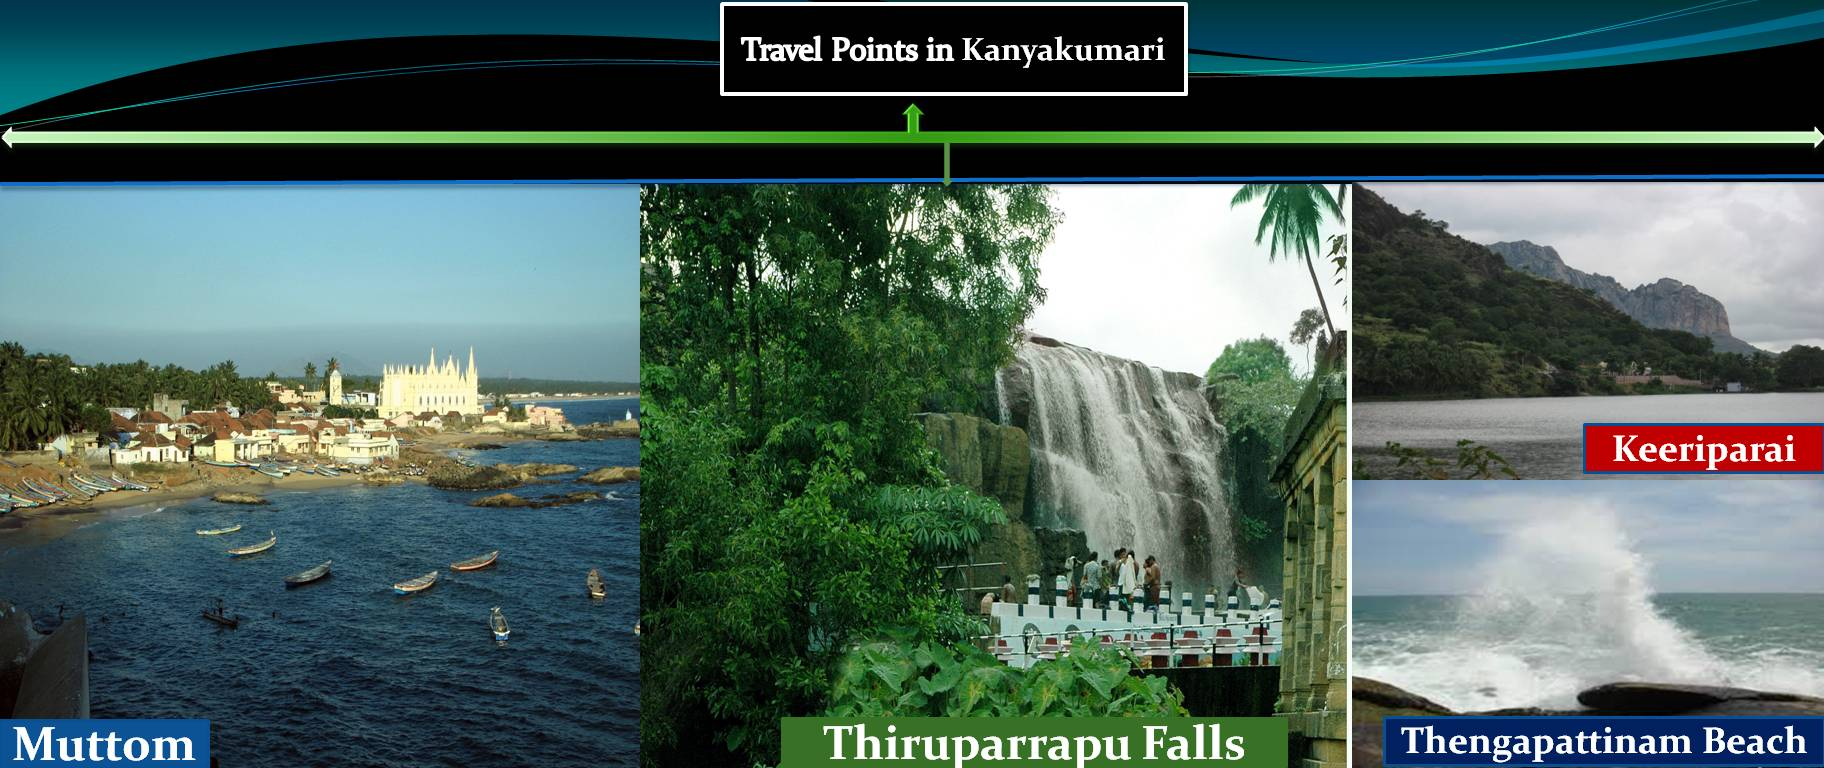 Travel Point in Kanyakumari